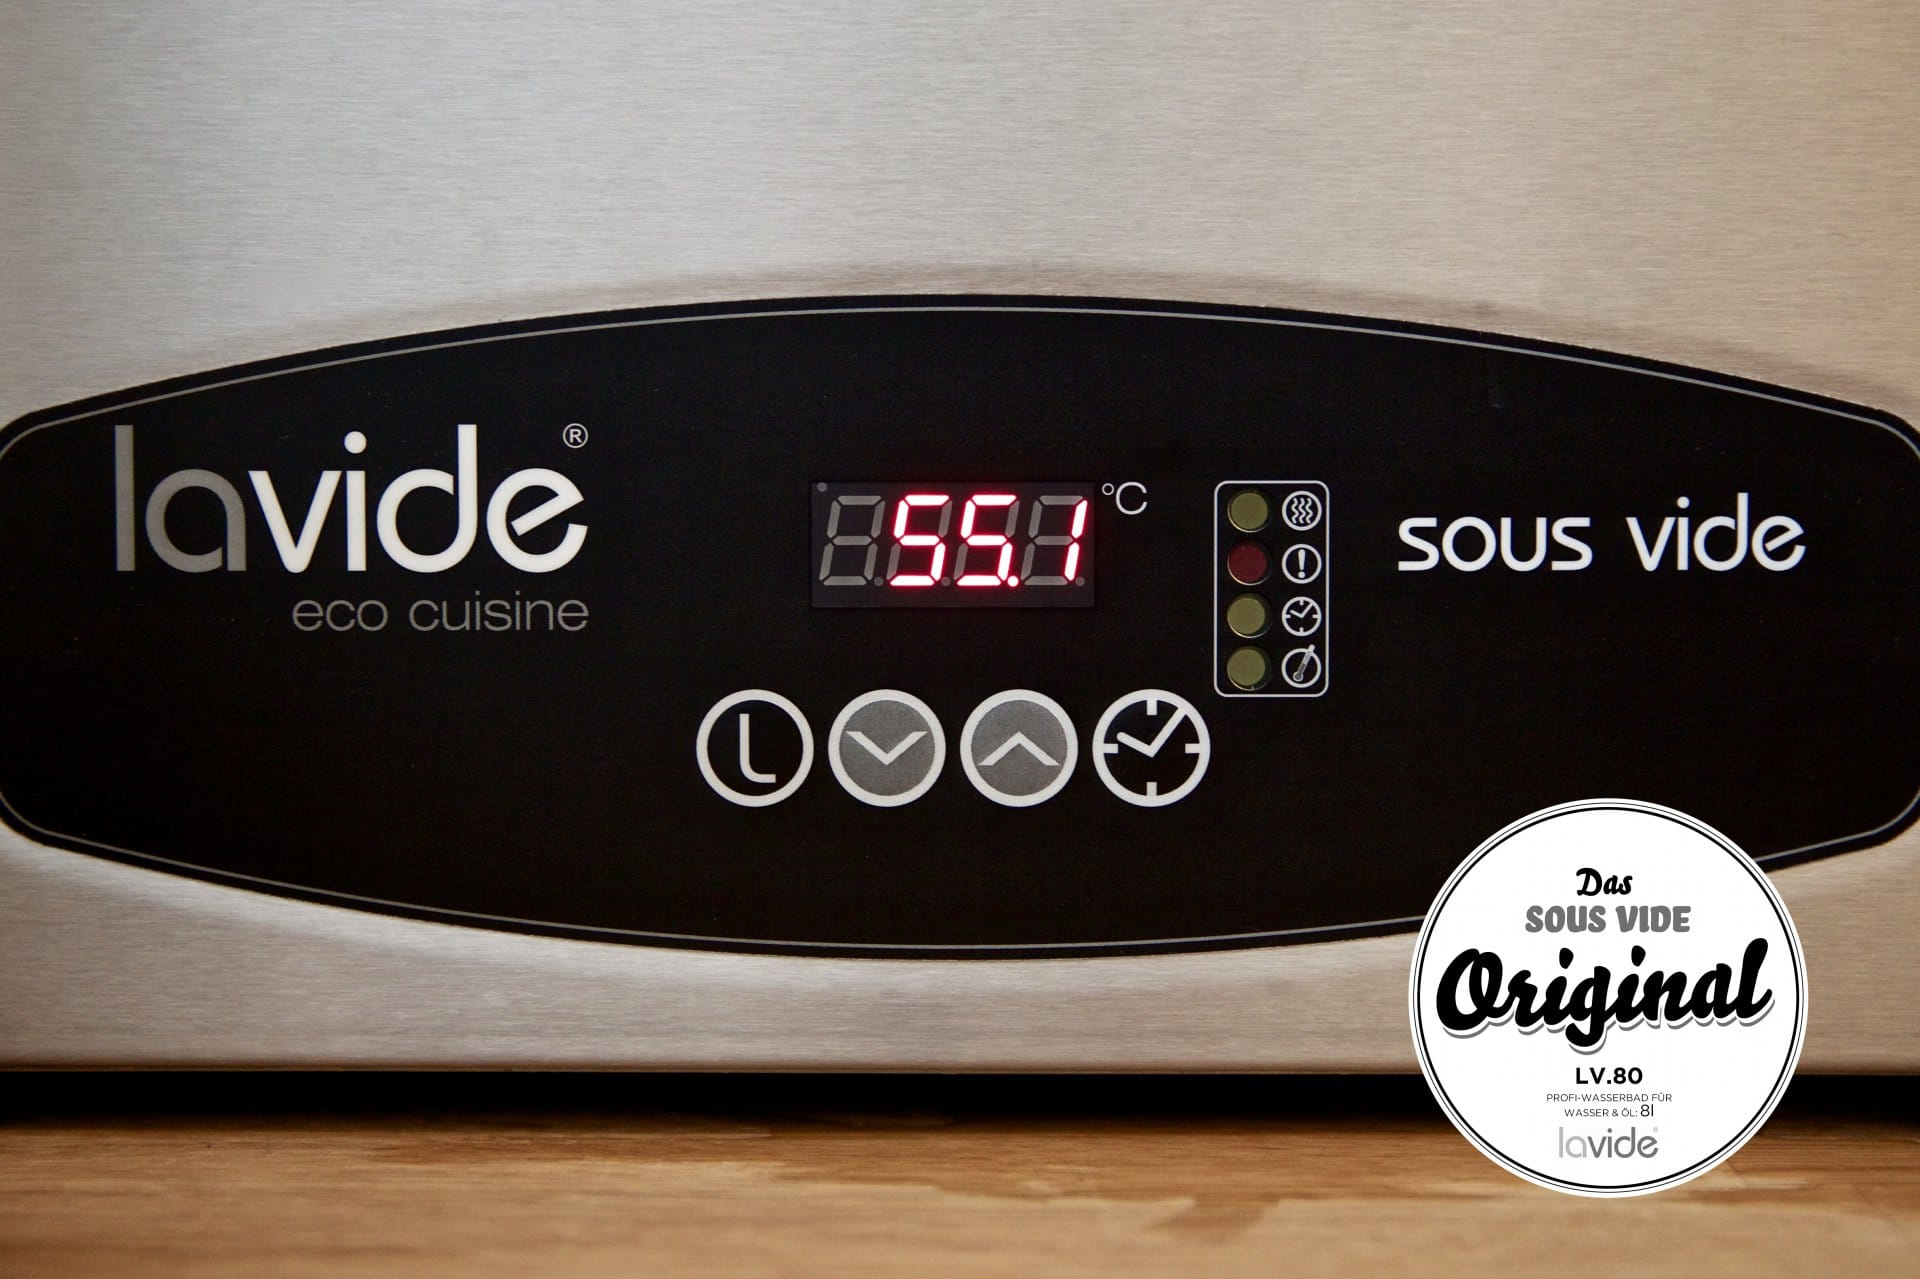 2013 06 23 steak sousvide 16